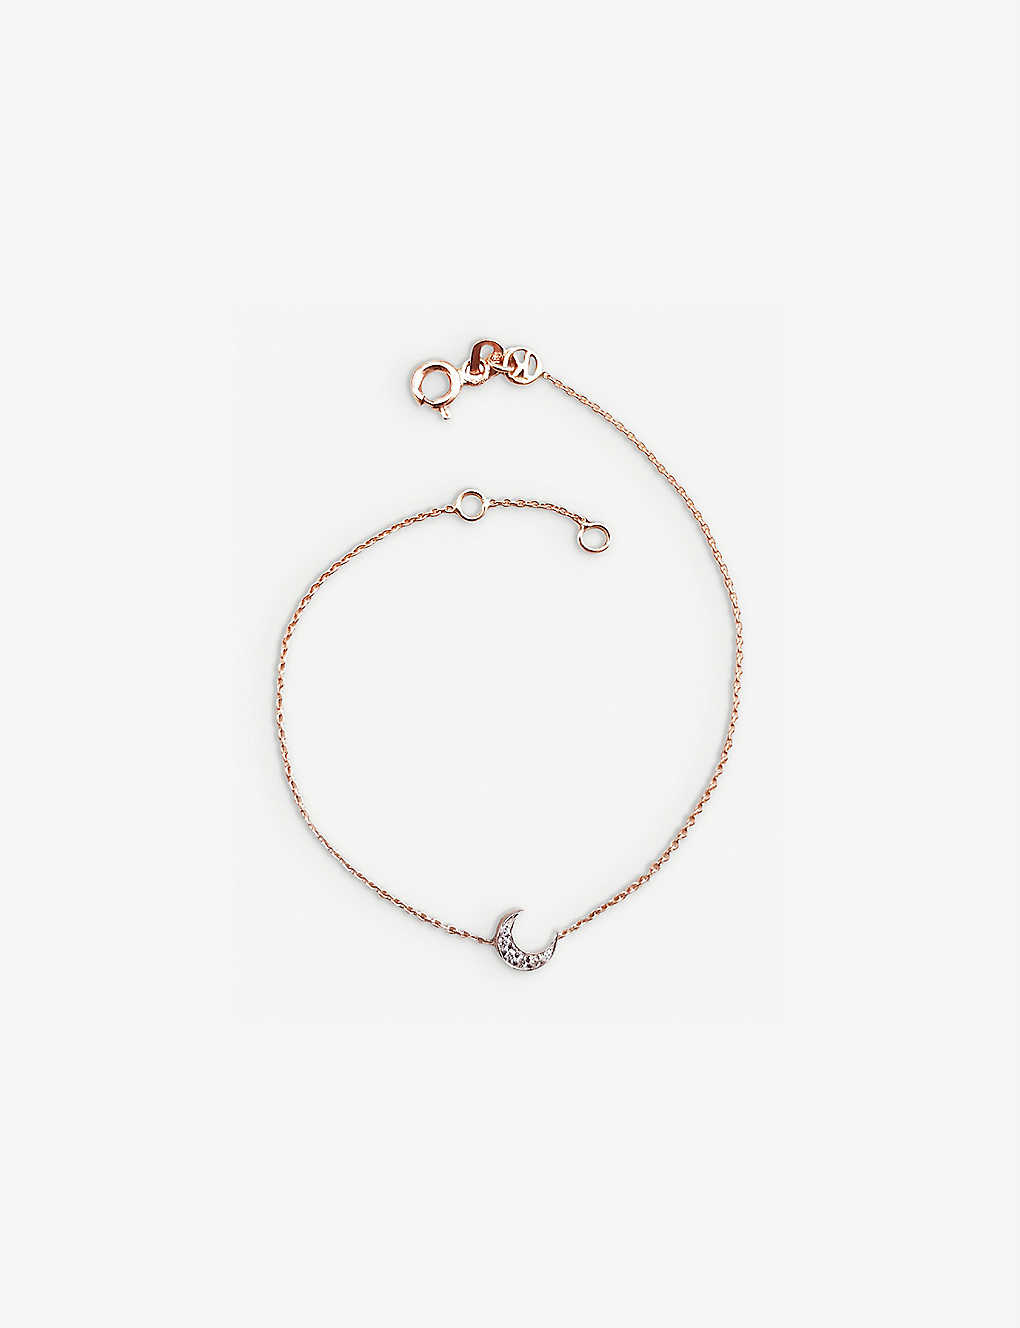 THE ALKEMISTRY: Kismet by Mika Crescent moon diamond and 14ct rose-gold bracelet